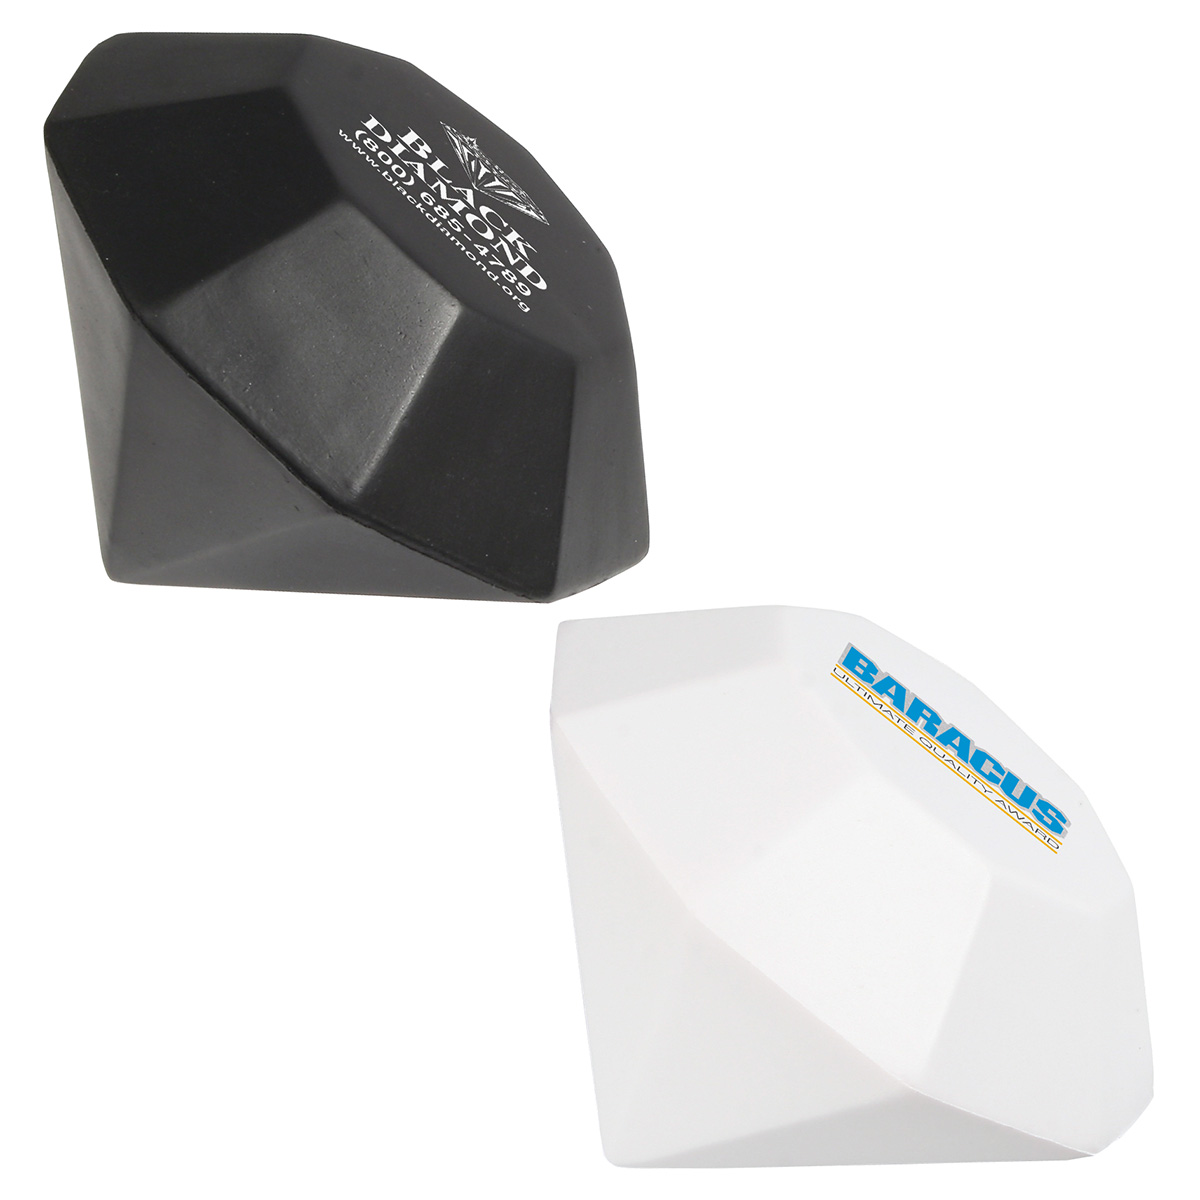 Diamond Stress Reliever, LGS-DM03, 1 Colour Imprint